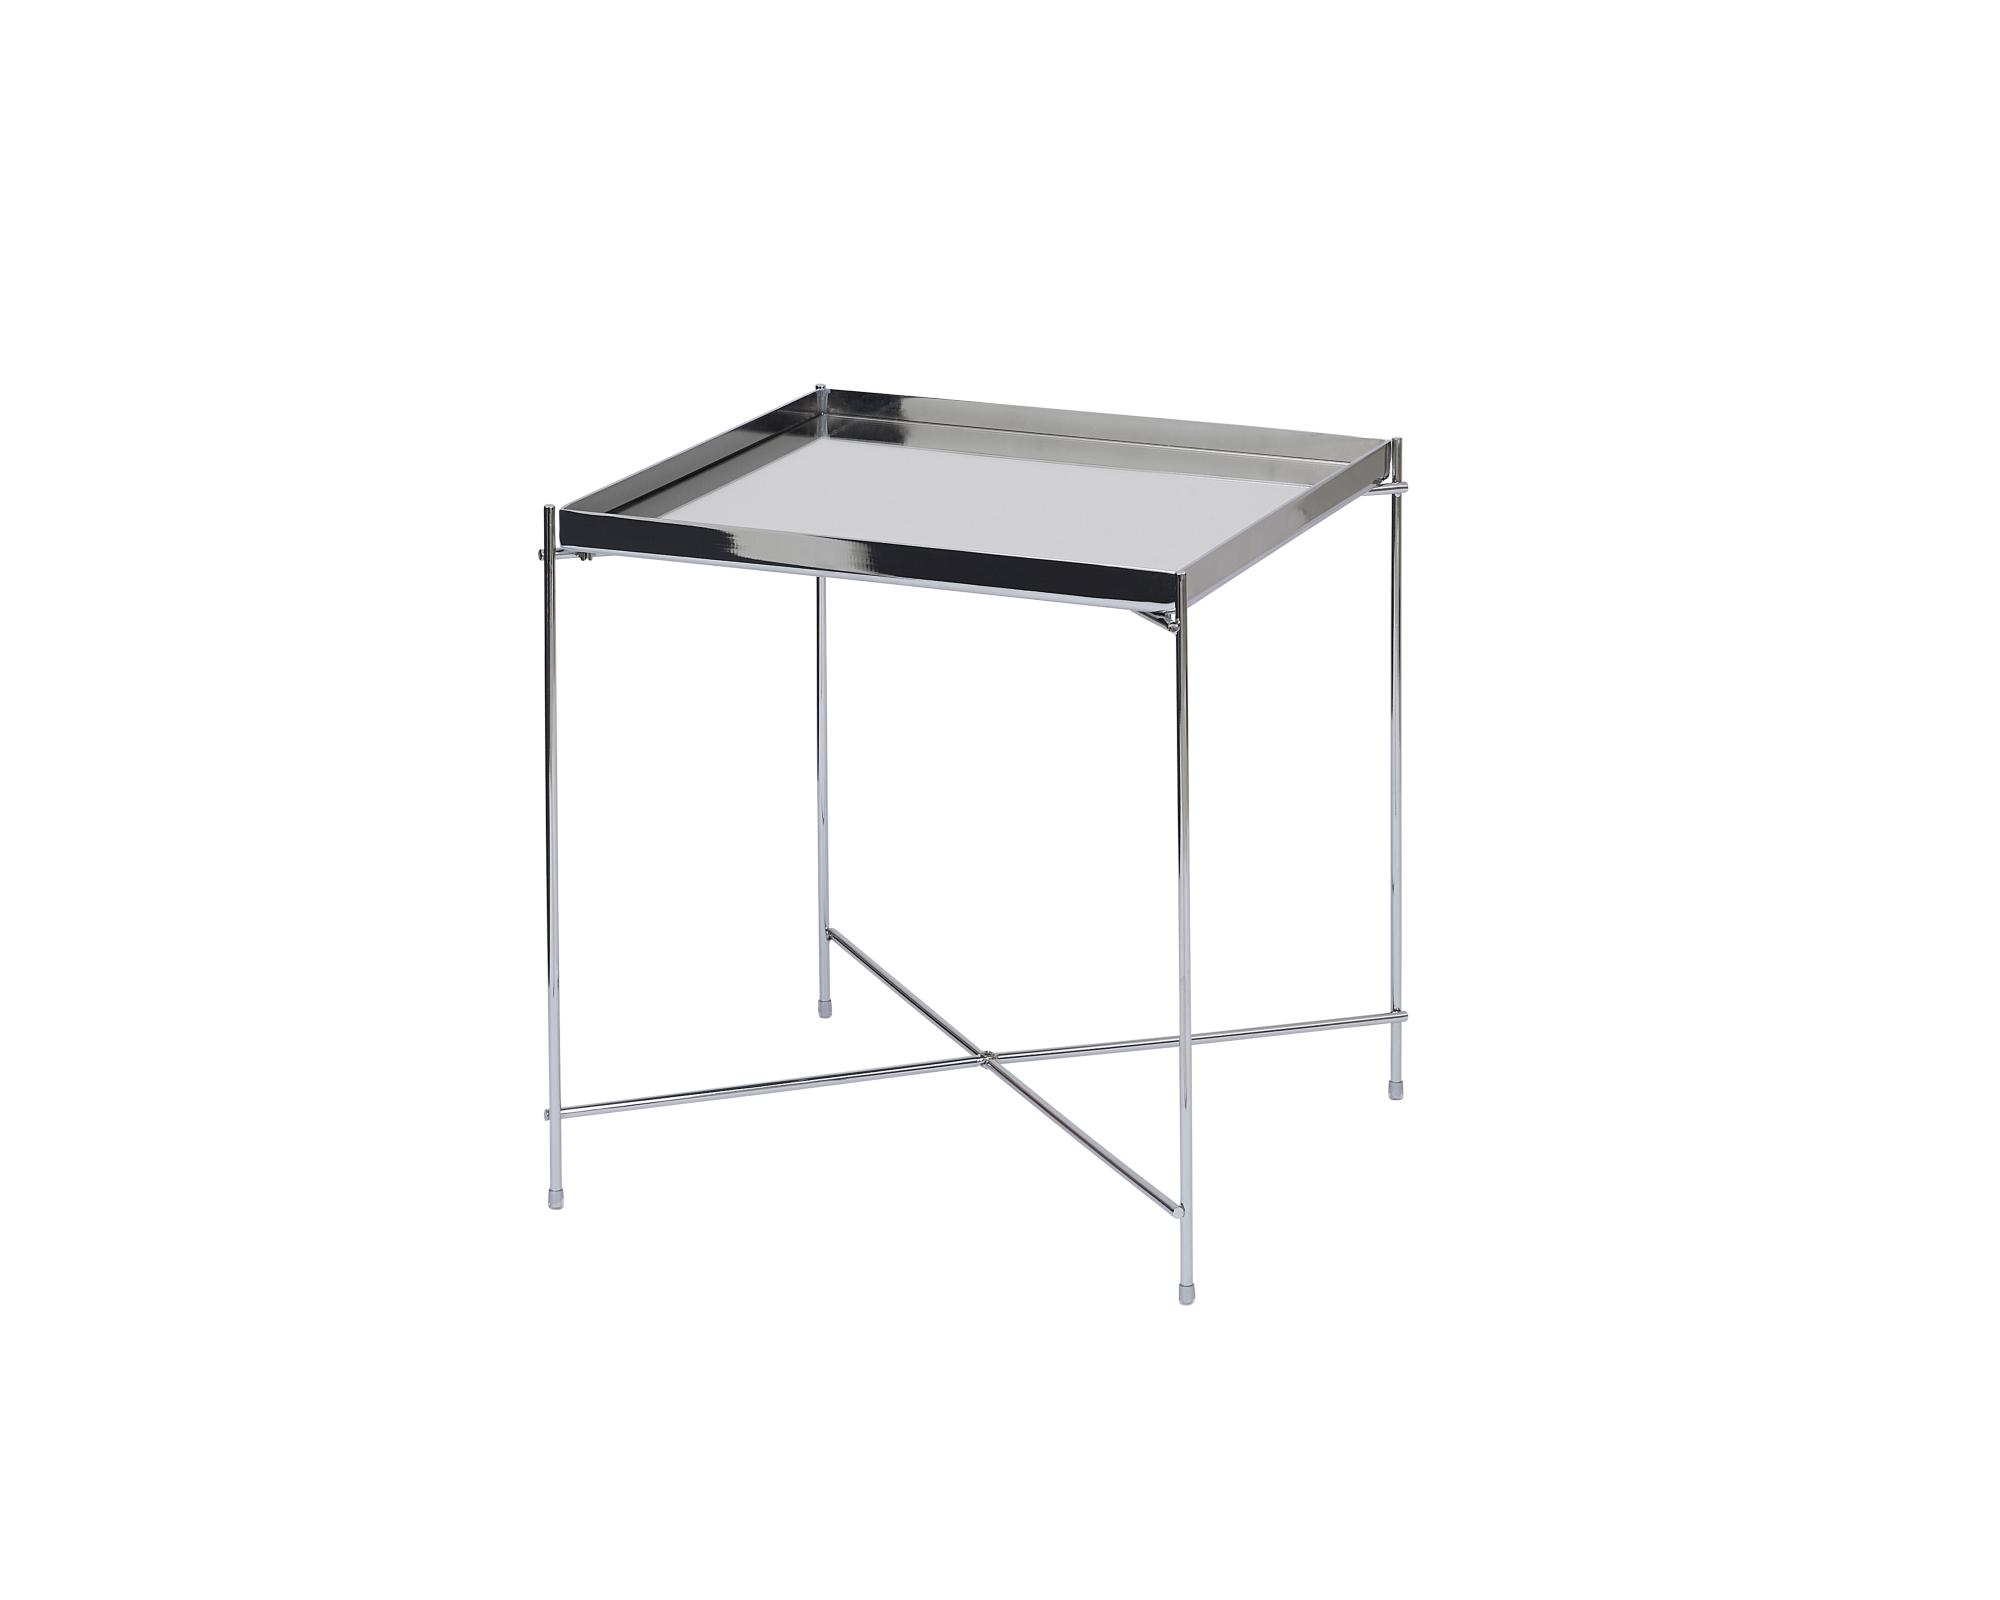 Oakland Chrome Metal Mirror Side Table - Square